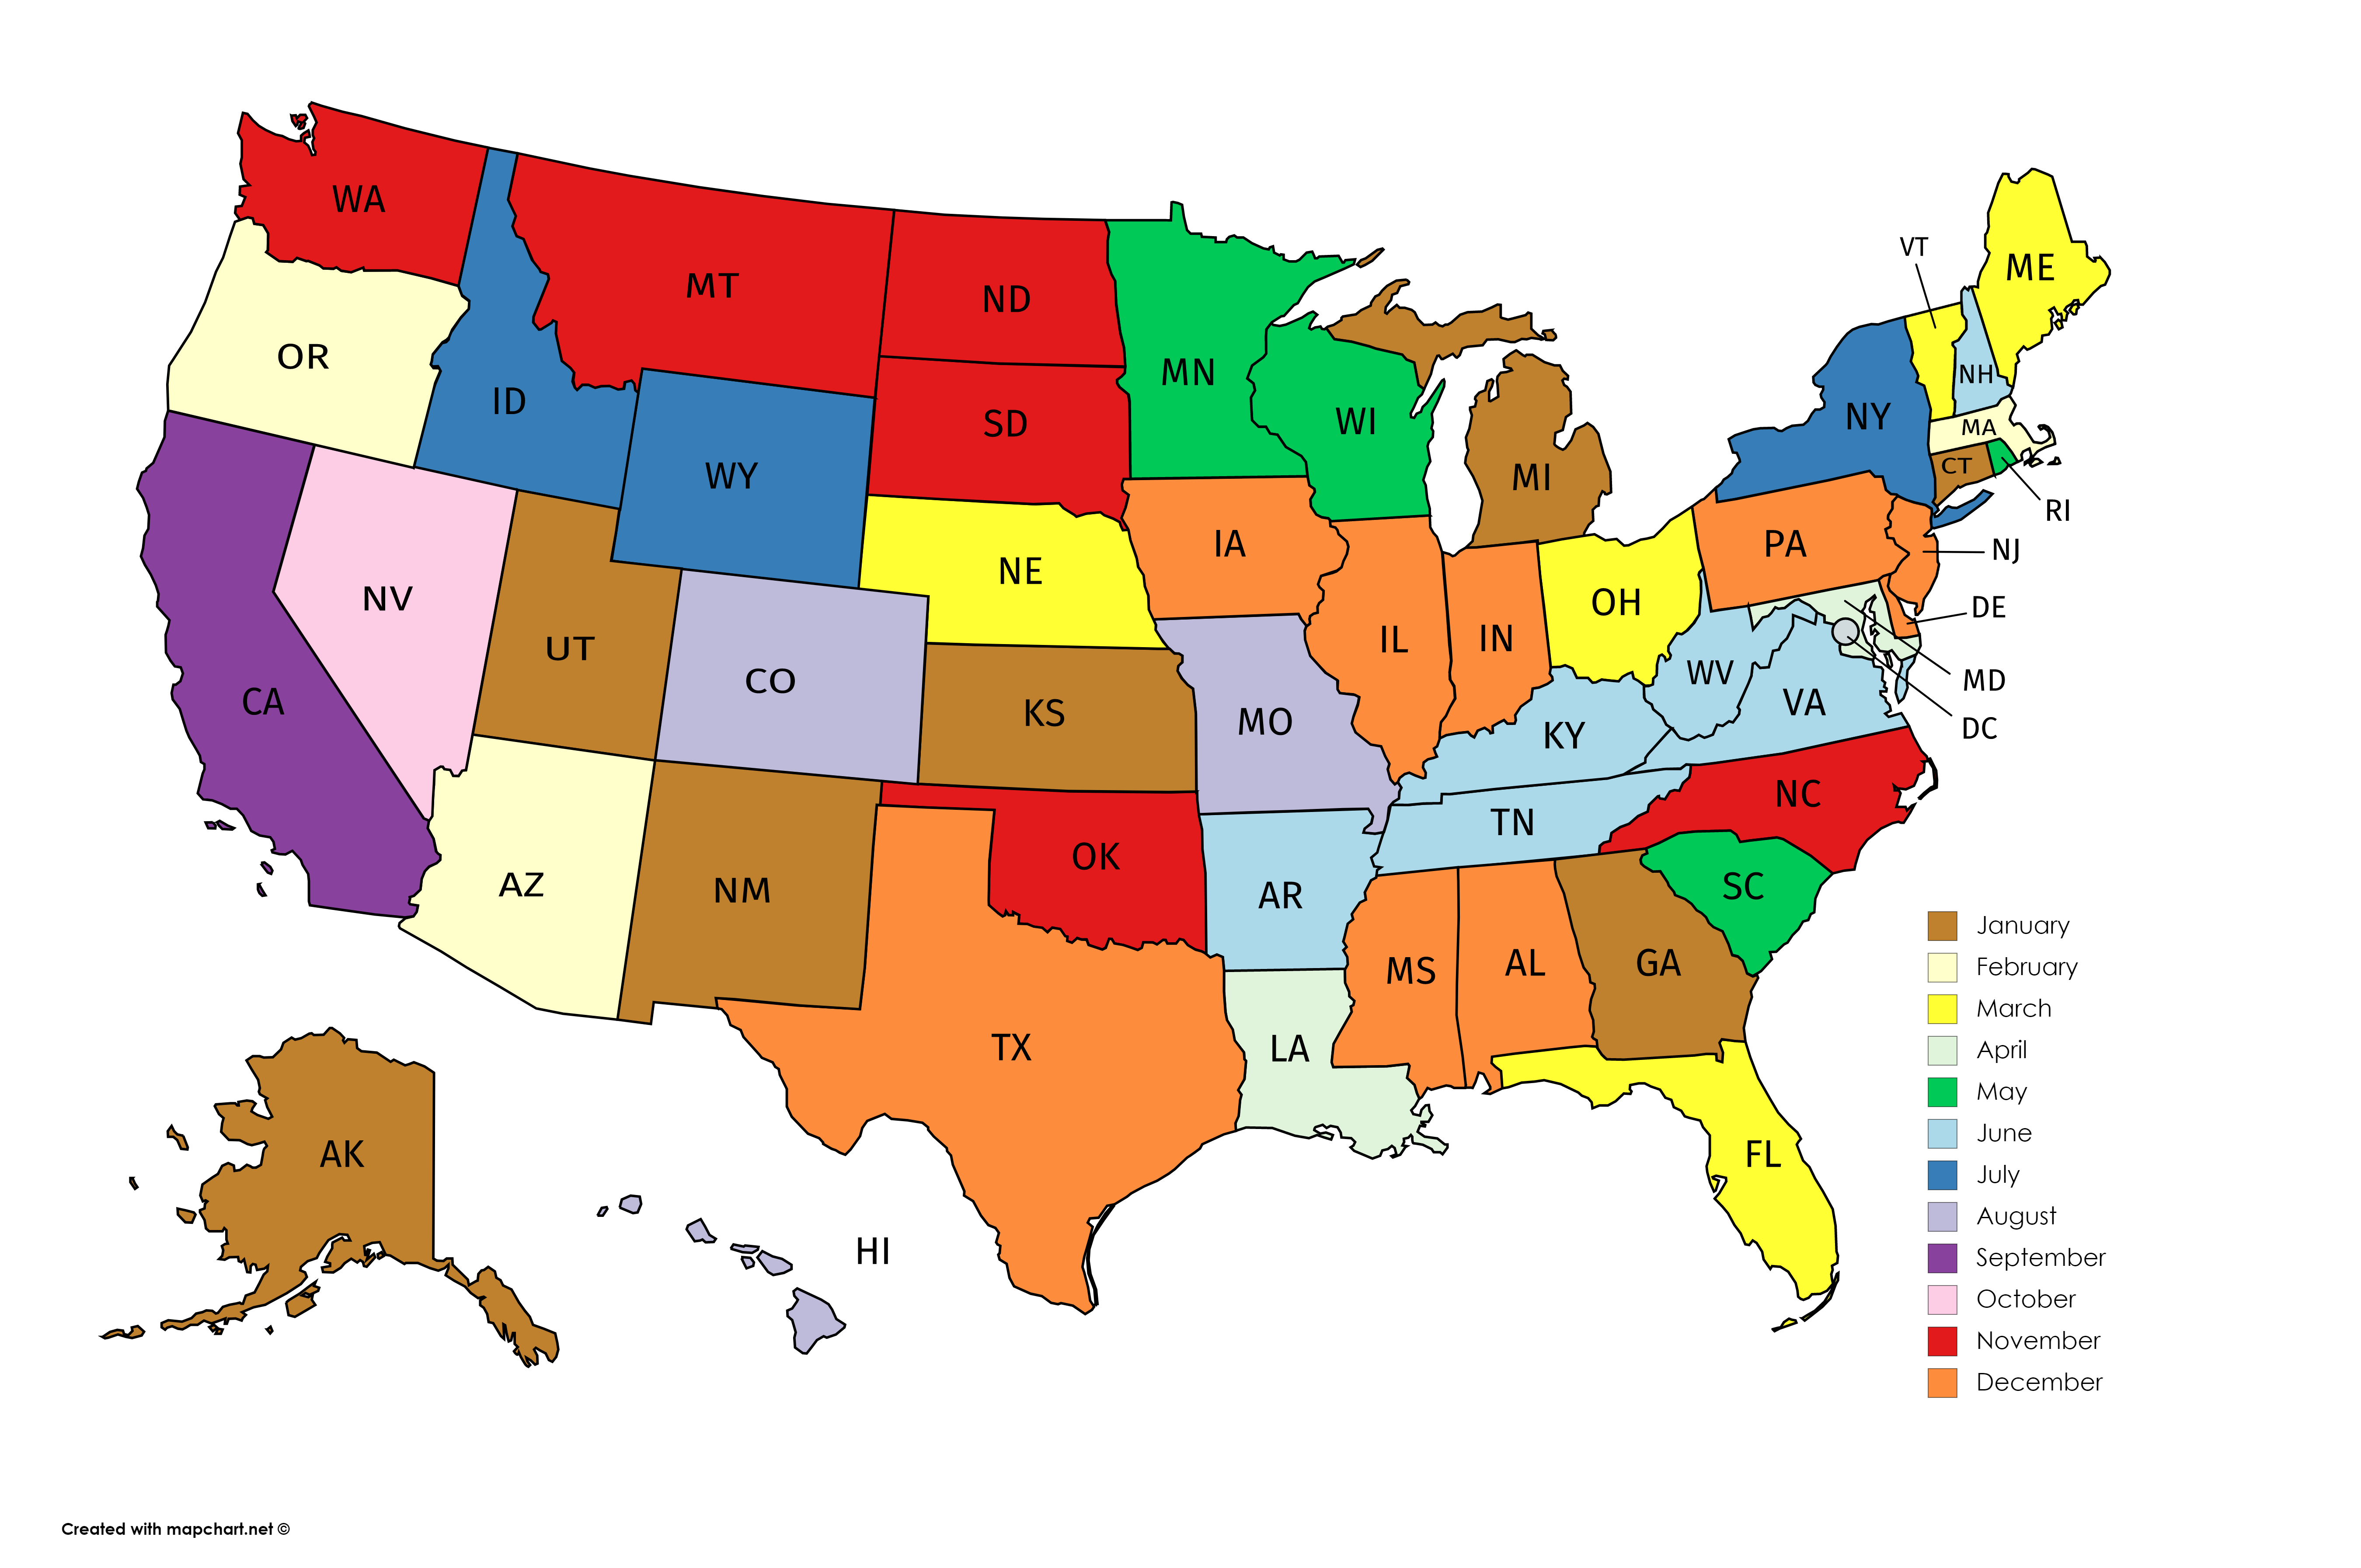 U.S. States by Month of Admission | Us map, Map, U.s. states on georgia map, canadian province map, connecticut map, canada map, oklahoma map, missouri map, michigan map, texas map, indiana map, oregon map, virginia map, north carolina map, california map, tennessee map, louisiana map, delaware map, arkansas map, arizona map, ohio map, europe map,